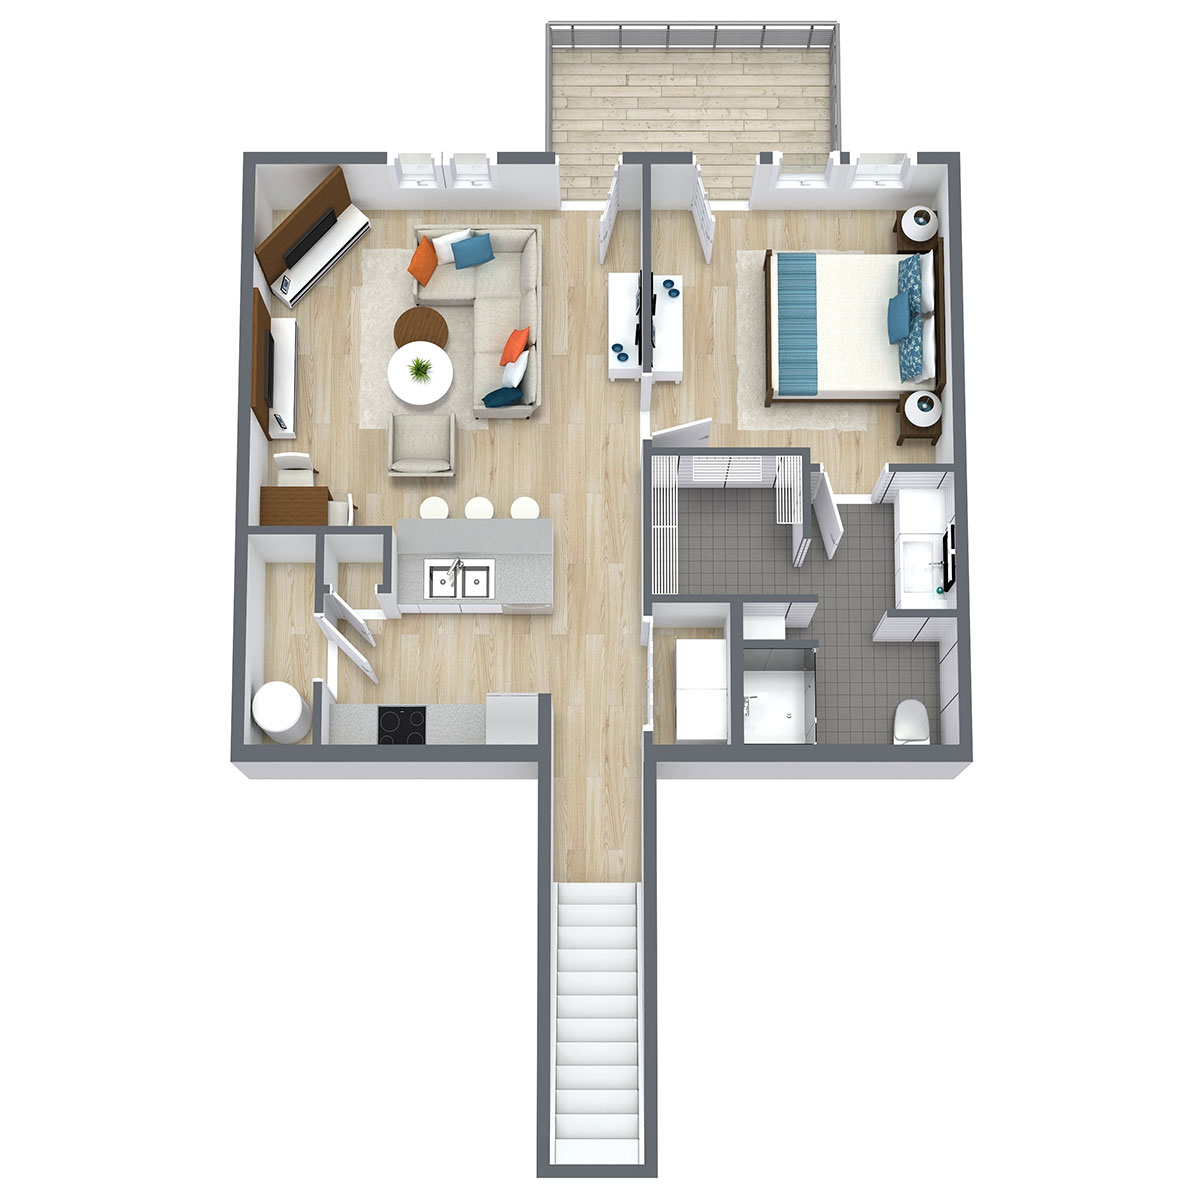 Floorplan - One Bed One Bath 851 image